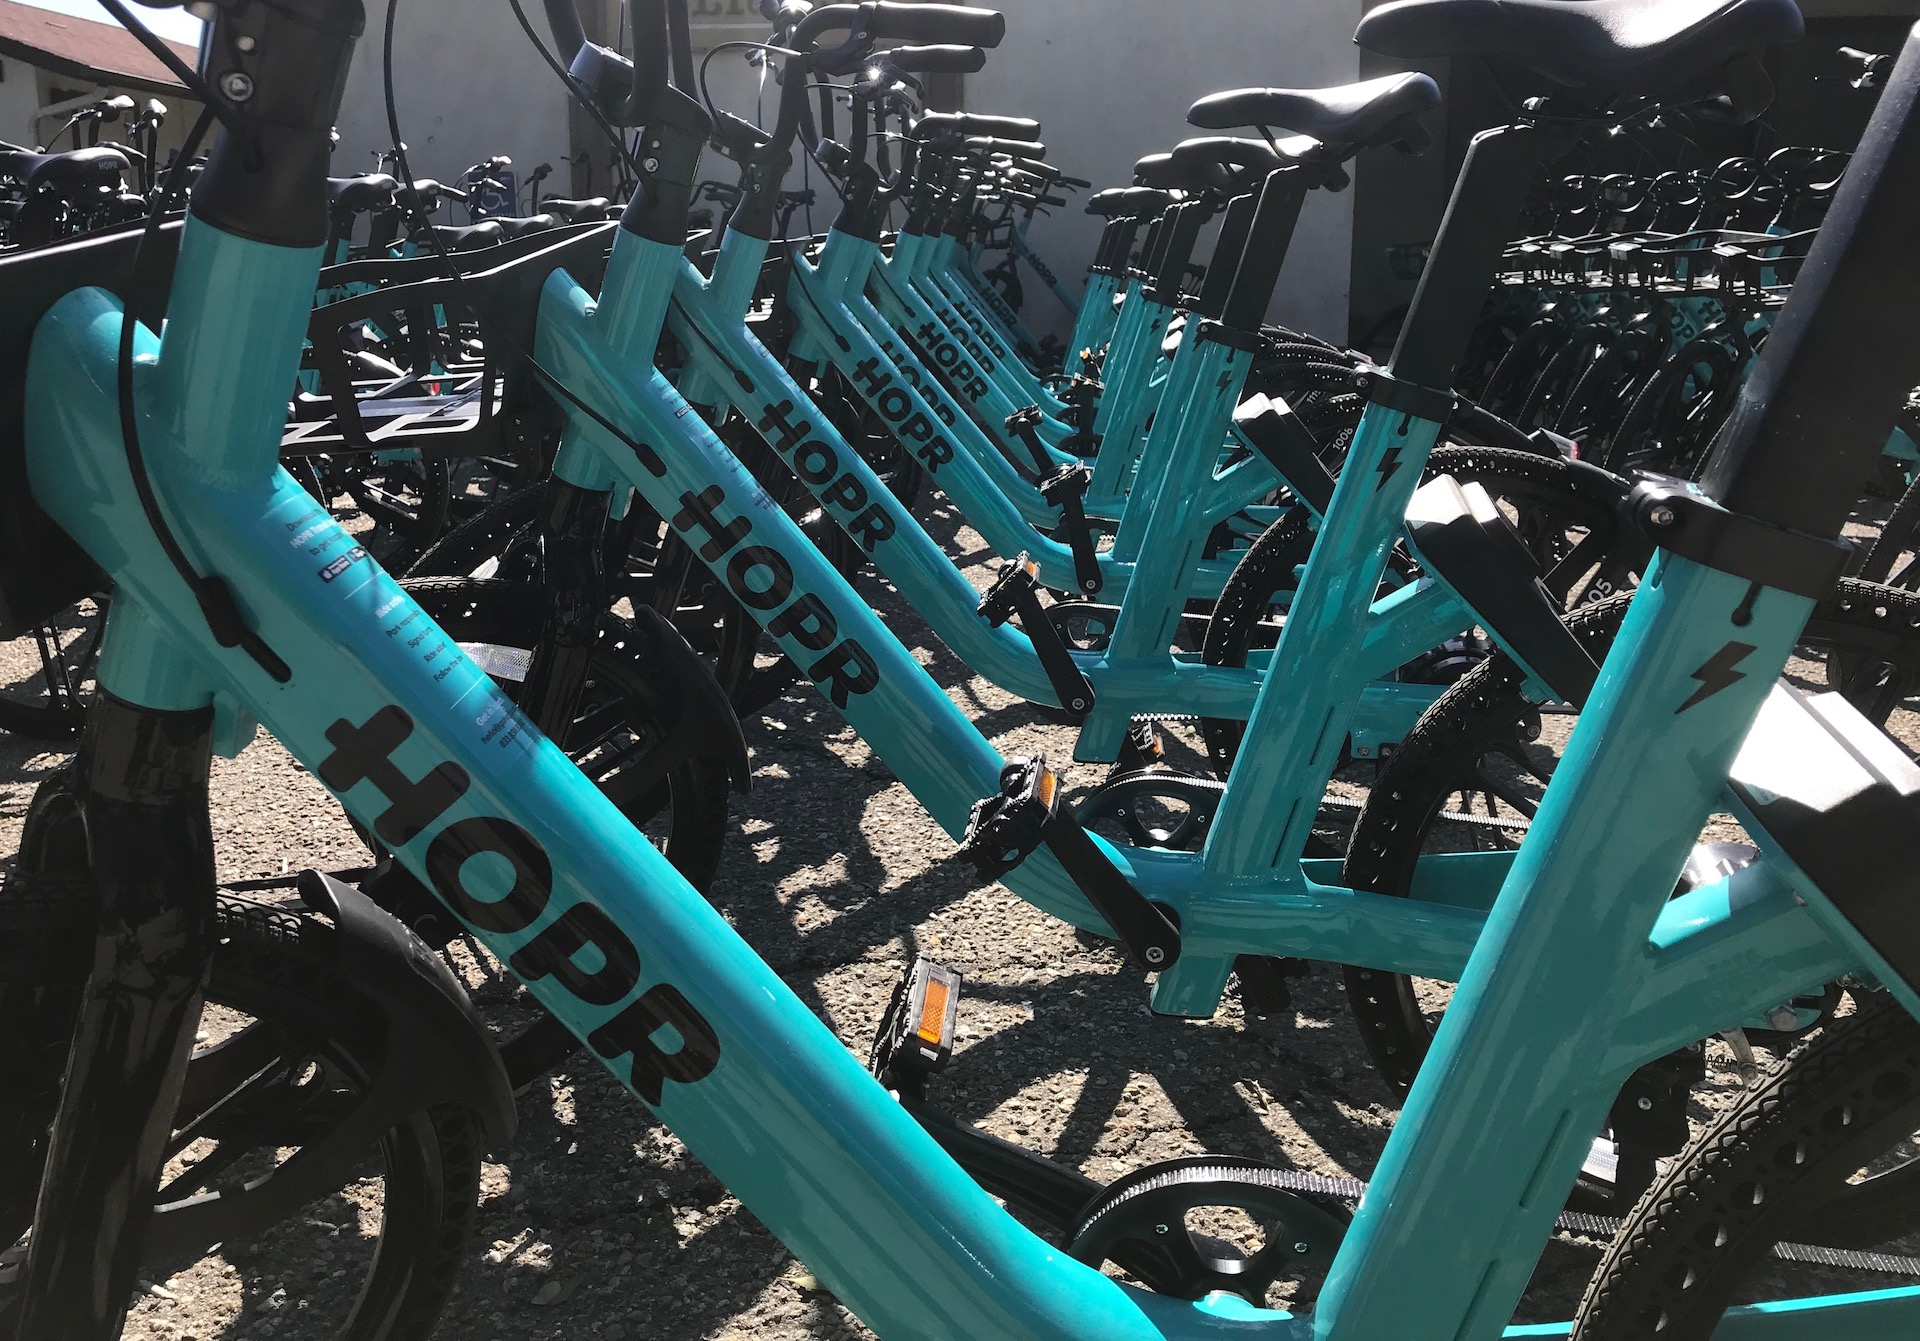 HOPR Bike Share UCSB to launch E-Assist Bikes